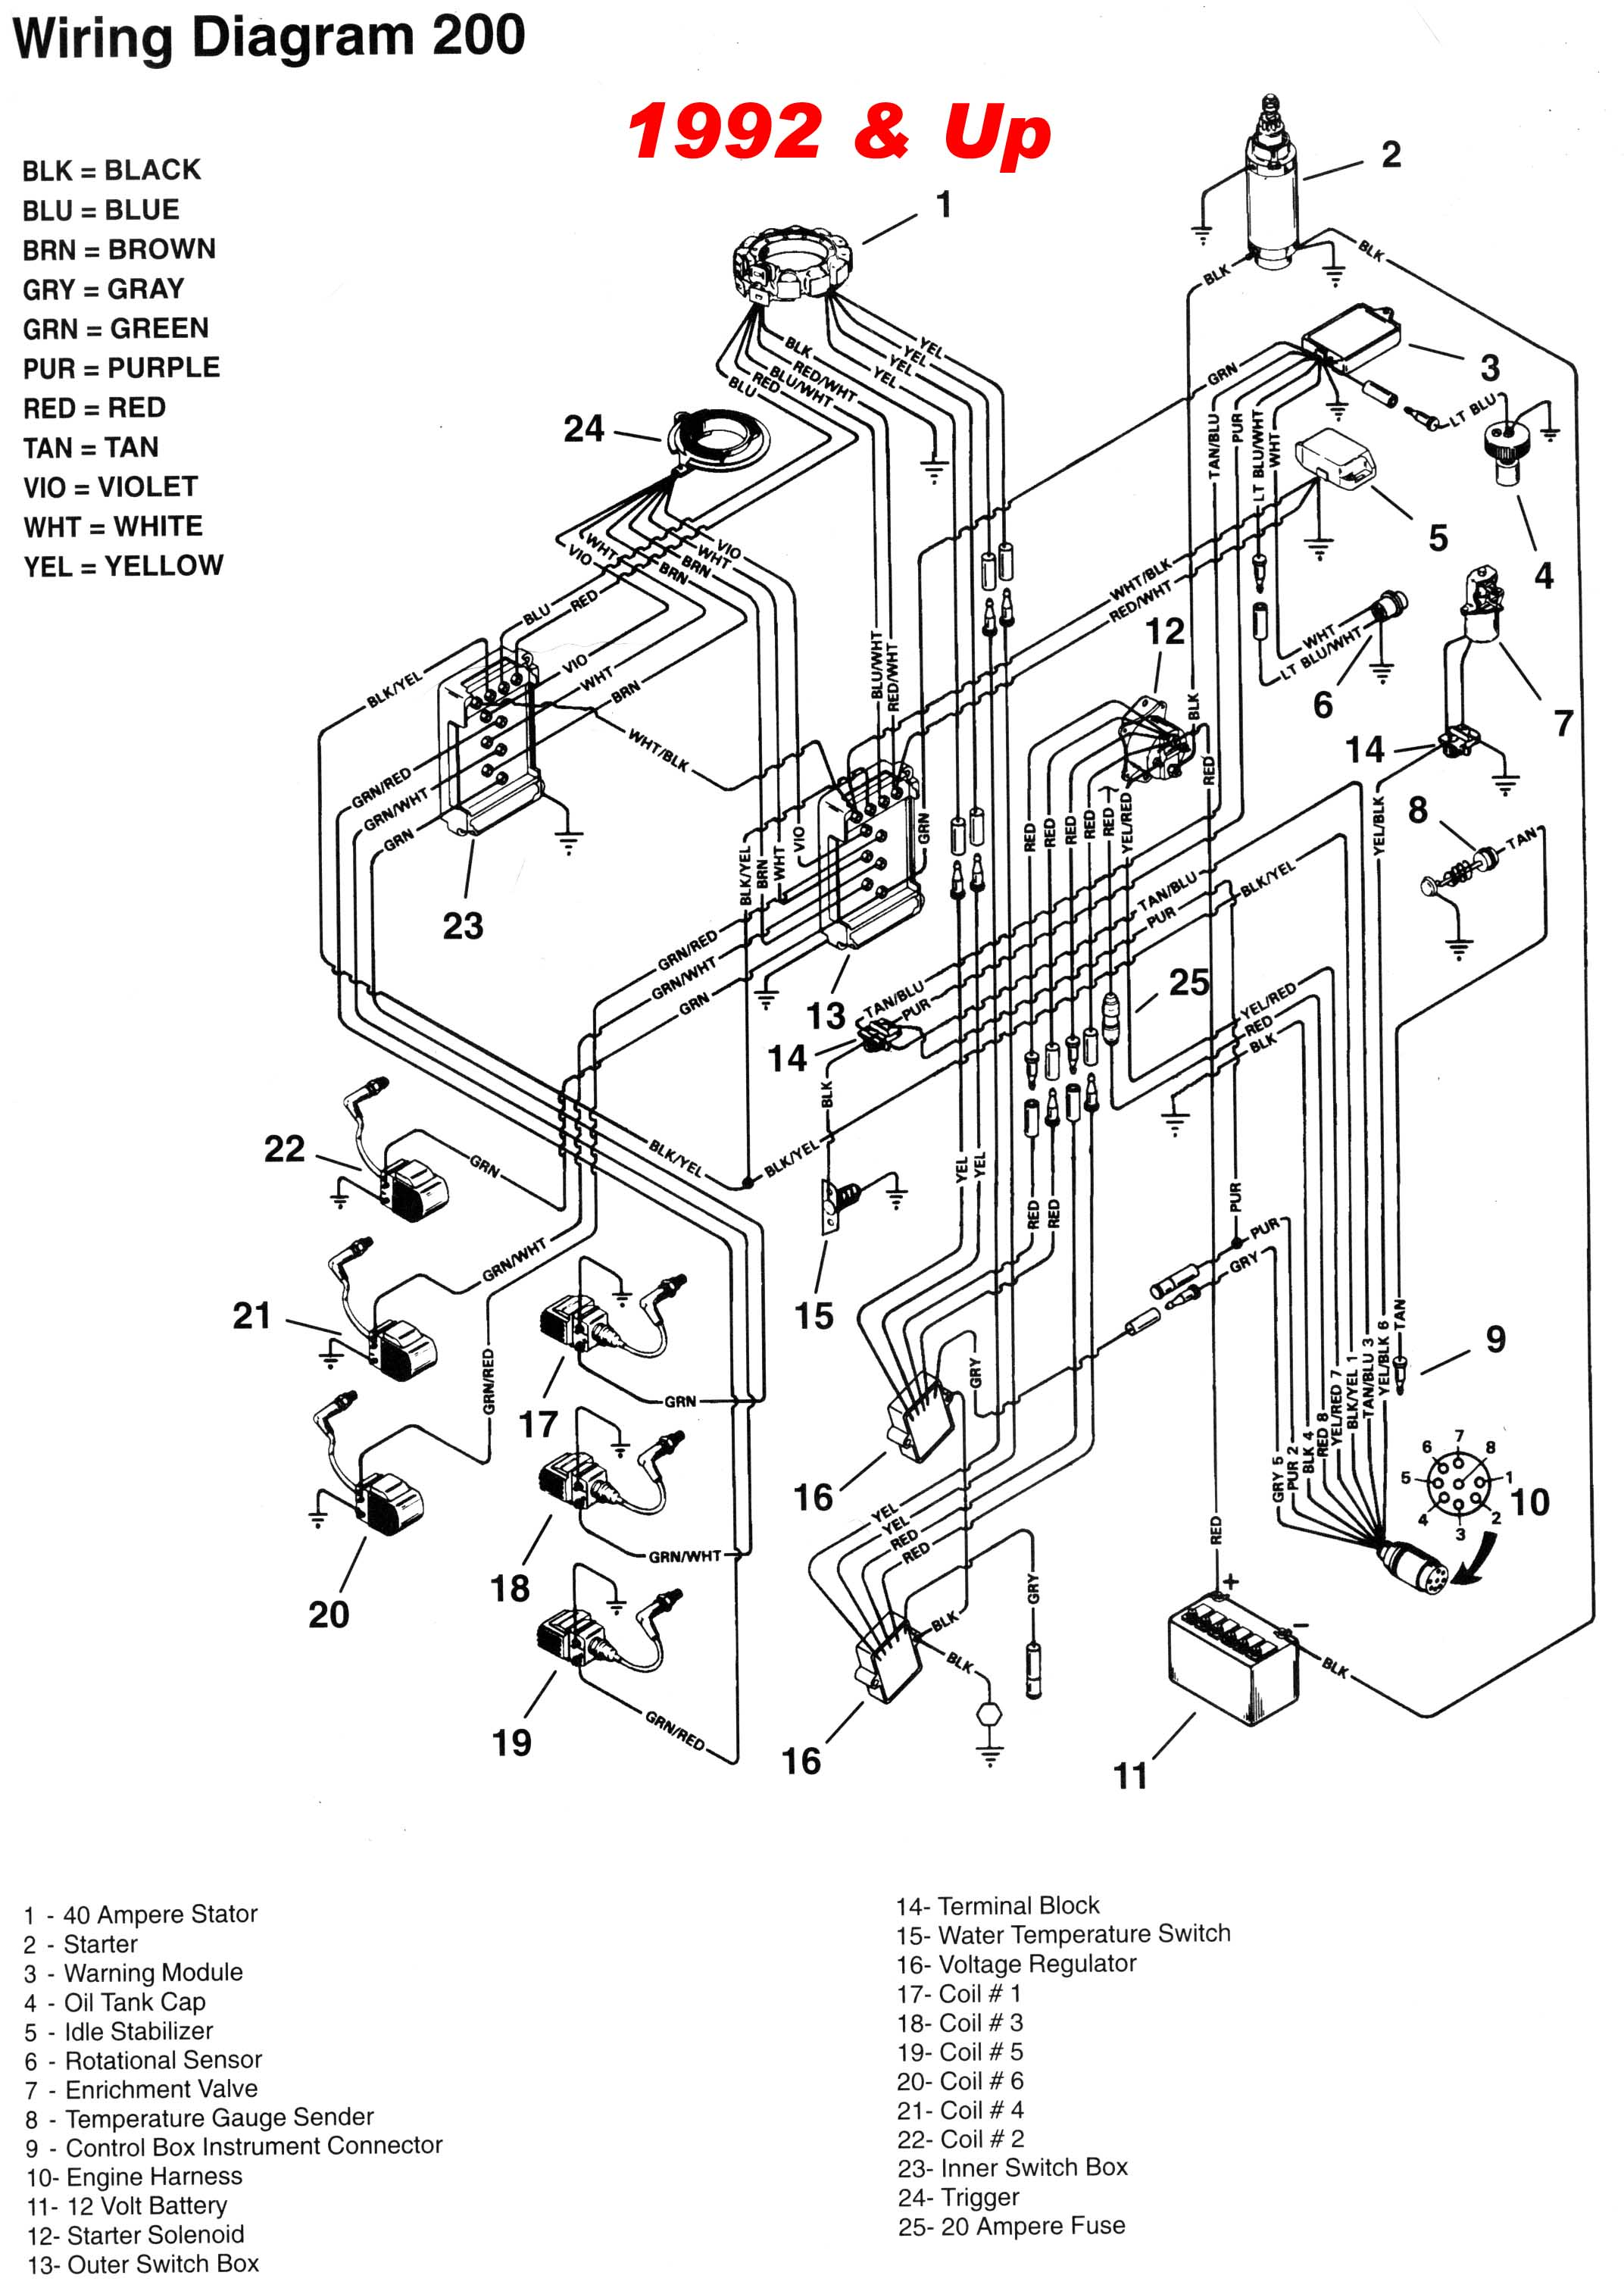 Mercruiser Sensor Wiring Diagram Free For You Wwwelectric Circuit Diagramcom Library Rh 38 Akszer Eu Electrical System Diagrams 50